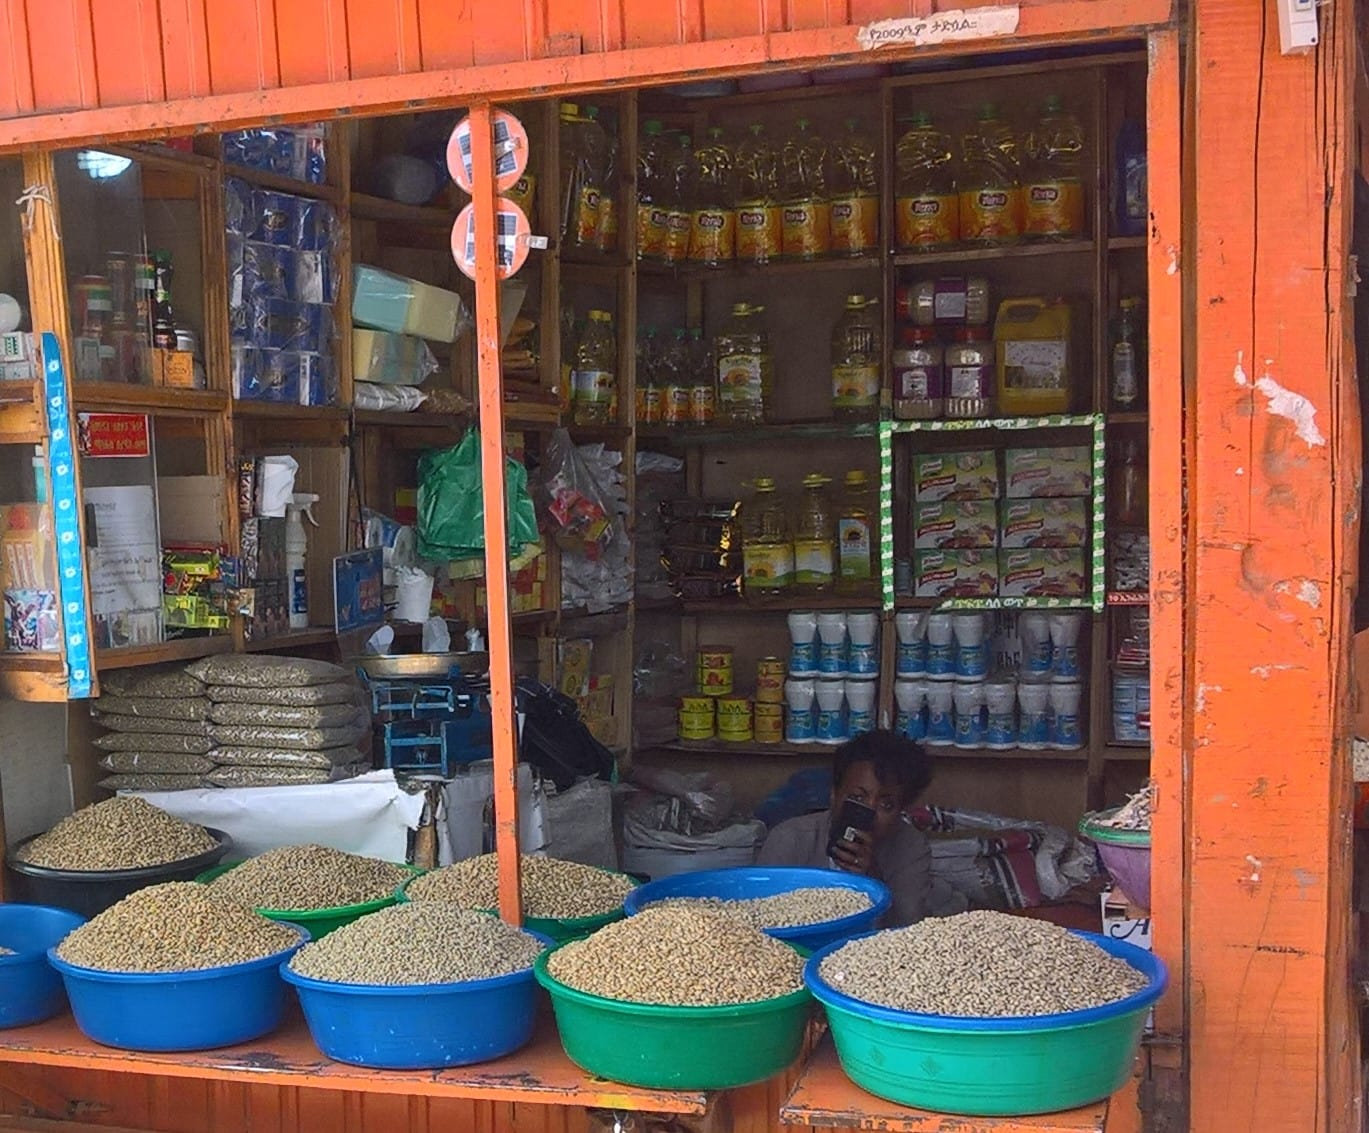 Pulses on sale alongside other food items in a local market in Addis Ababa, Ethiopia (photo credit: ILRI/Geraldine Klarenberg)